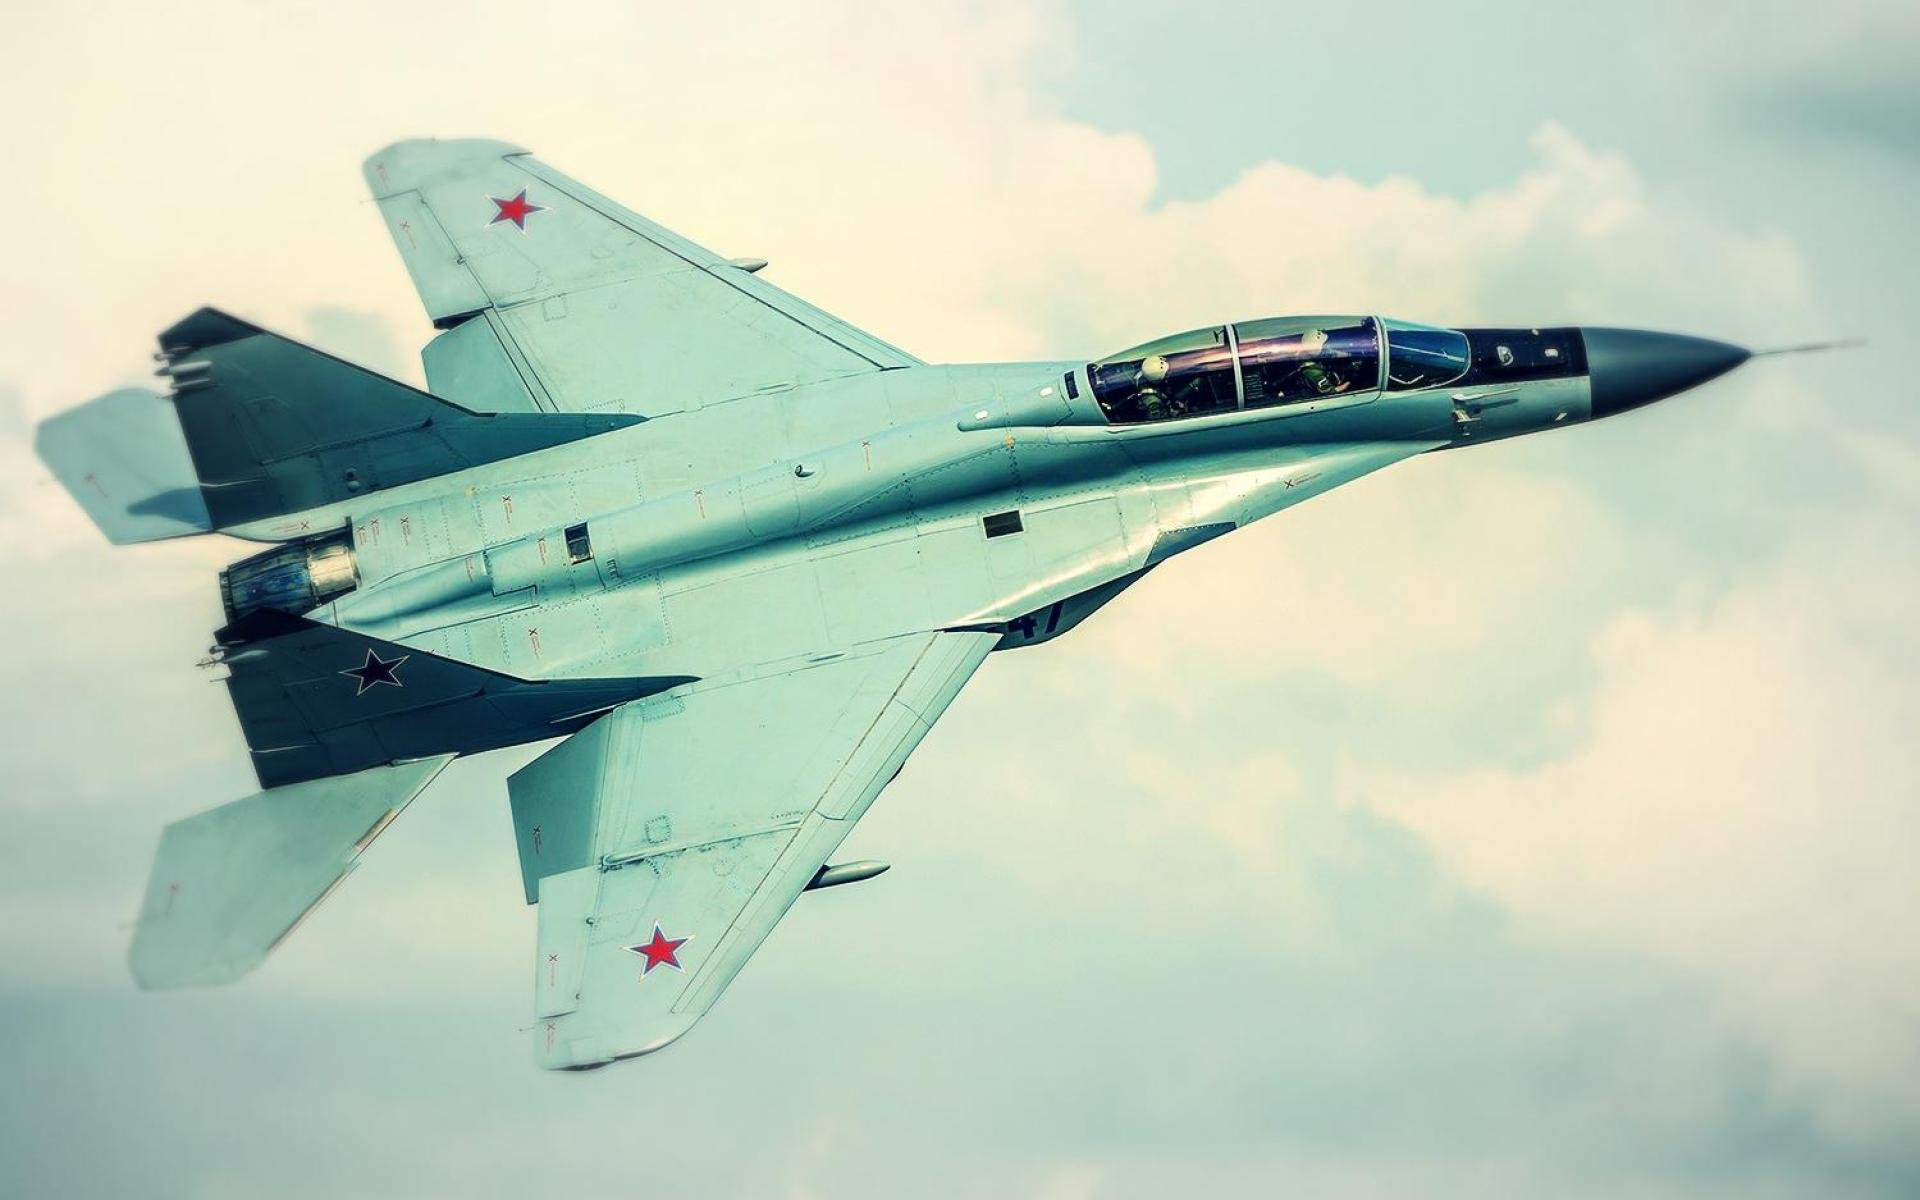 Mig 35 Hd Wallpaper: MIG-35 Fighter Jet Russian Airplane Plane Military Mig (21